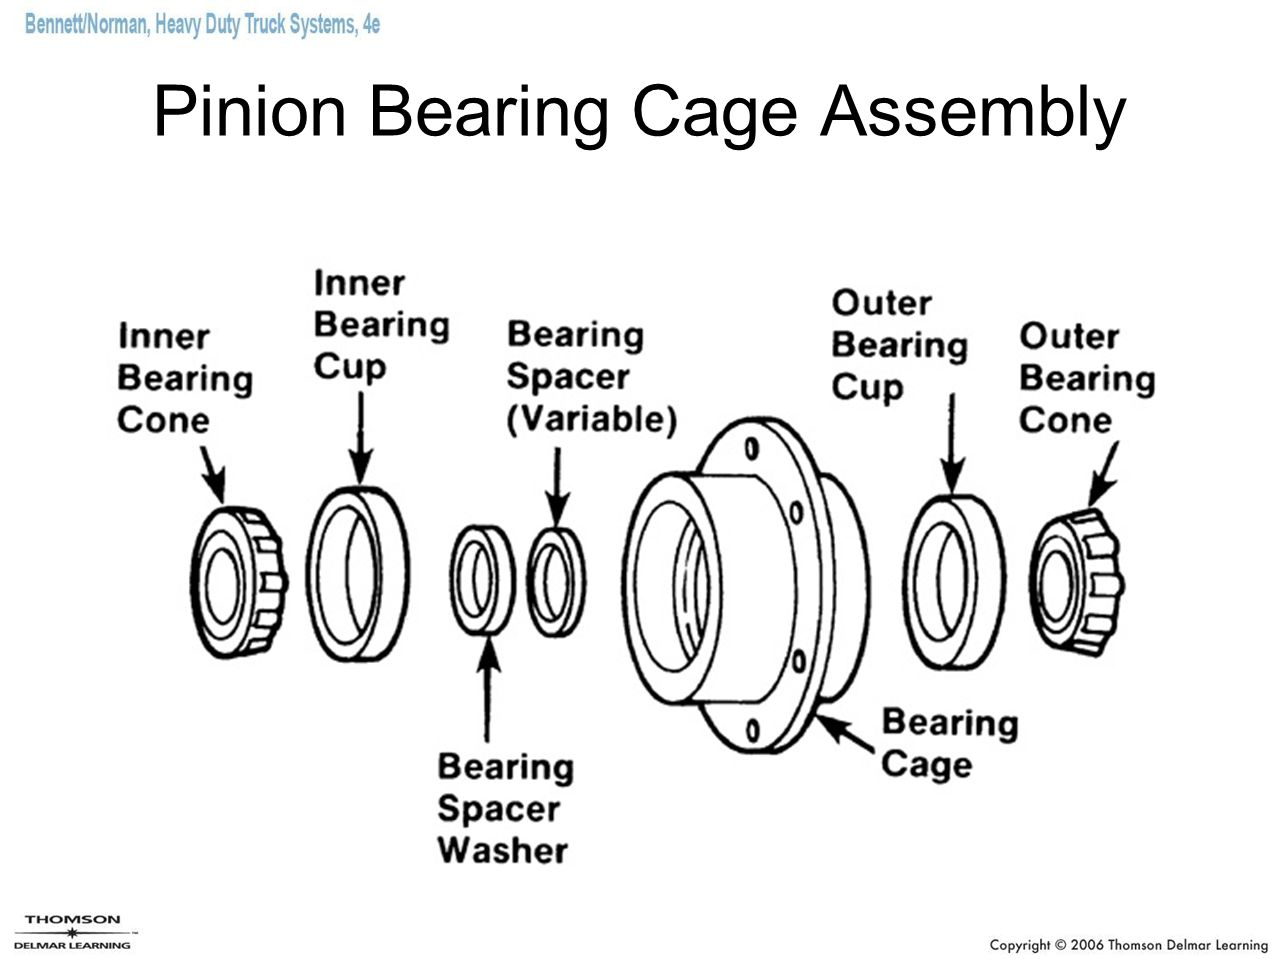 Pinion Bearing Cage Assembly